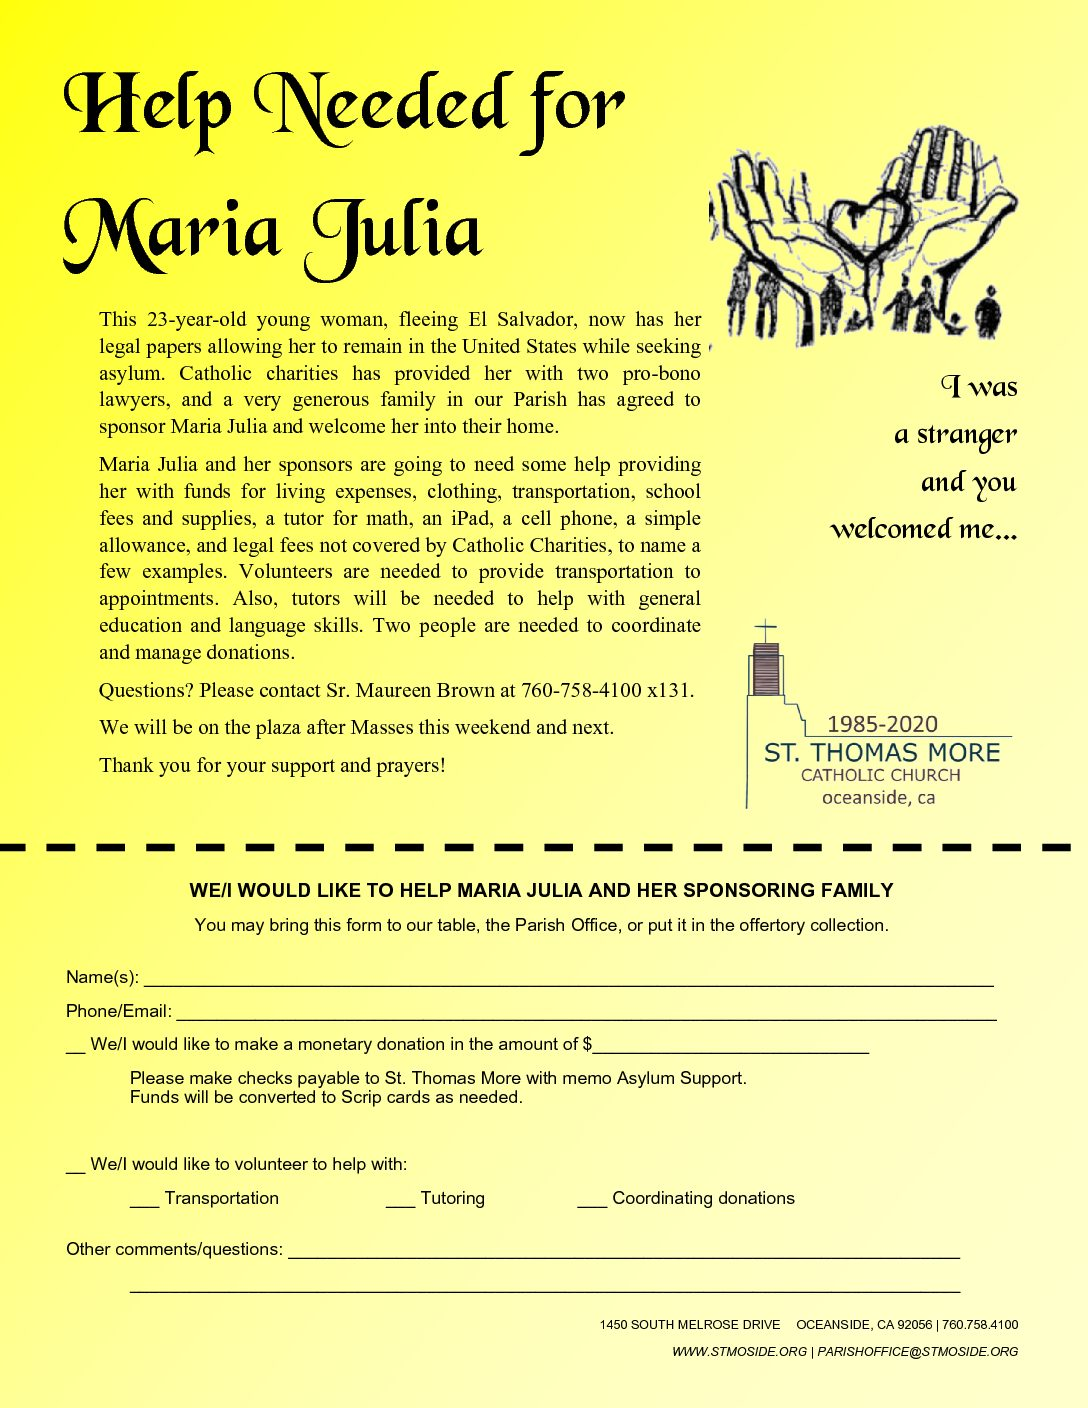 Help Needed for Maria Julia, Asylum Applicant